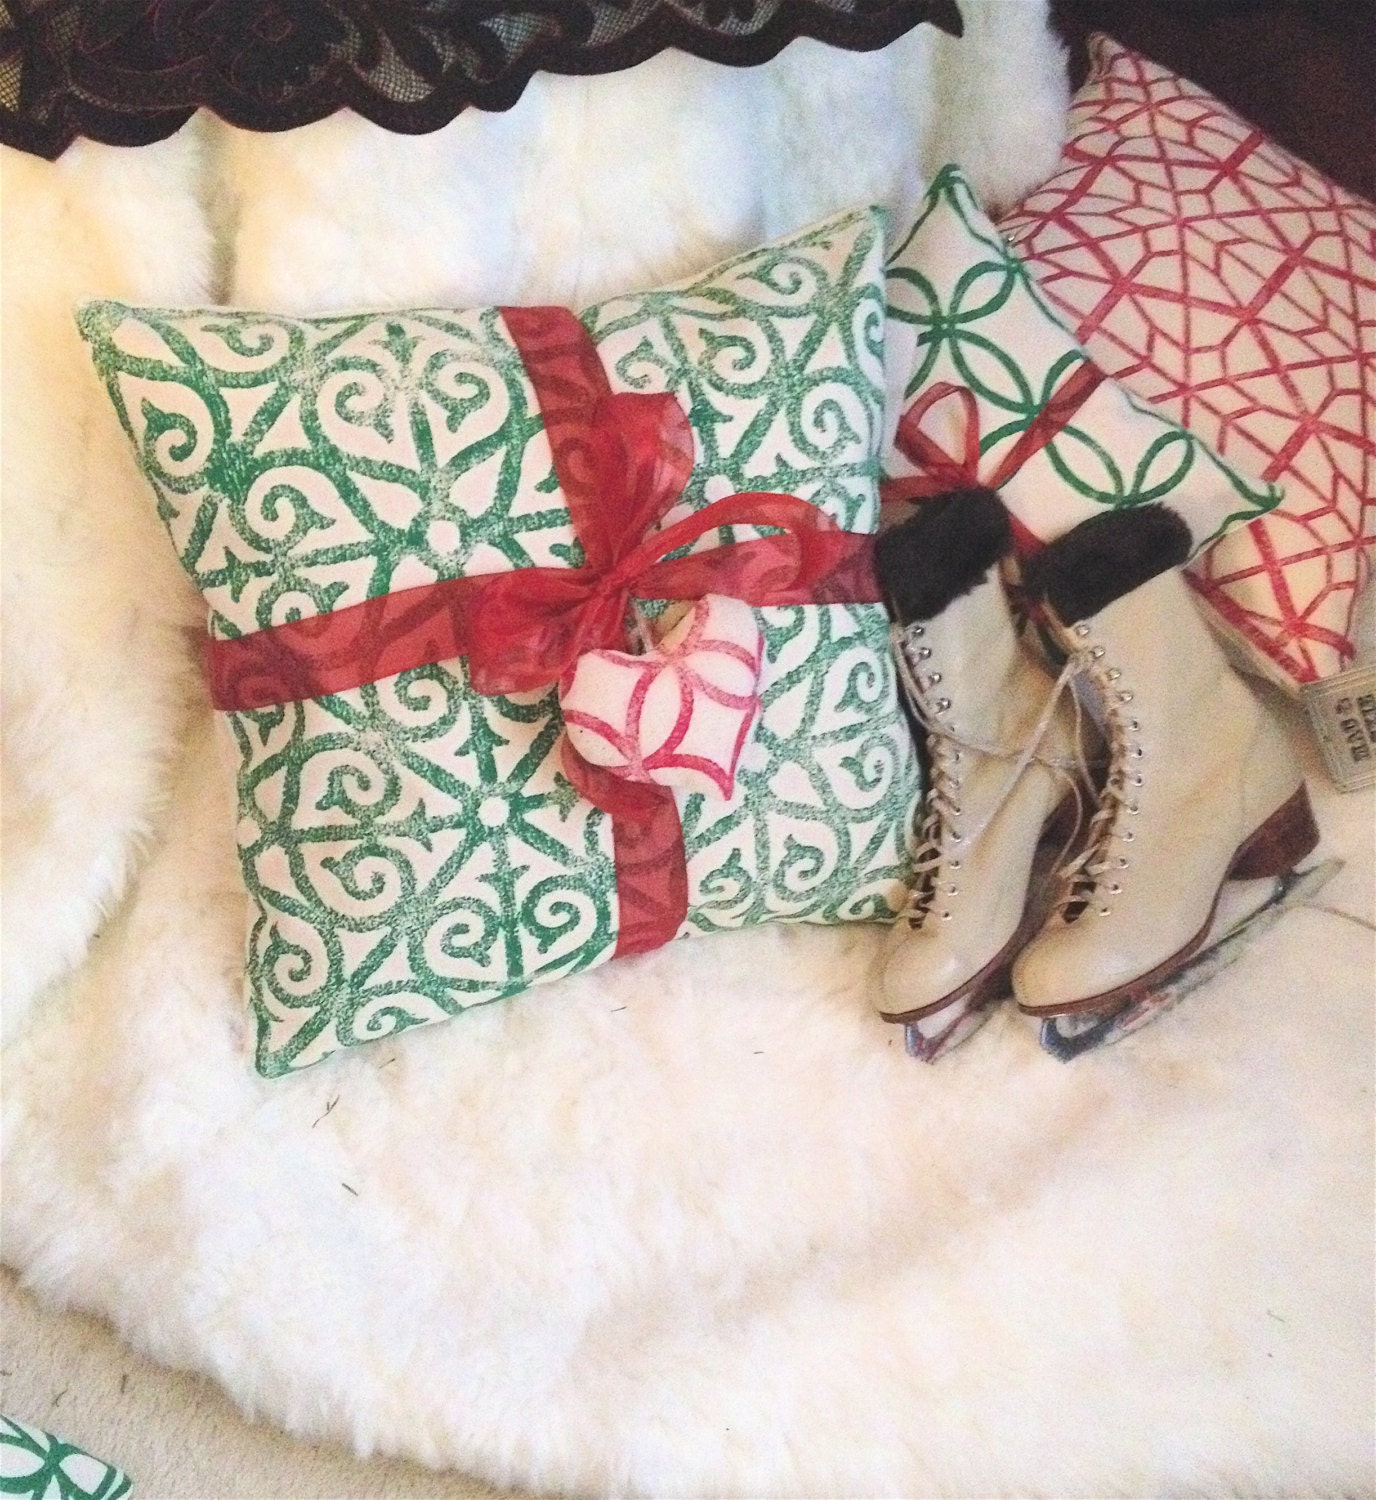 Holiday Decorative Pillows Jewel Tone Pillow Covers by MacAndLexie